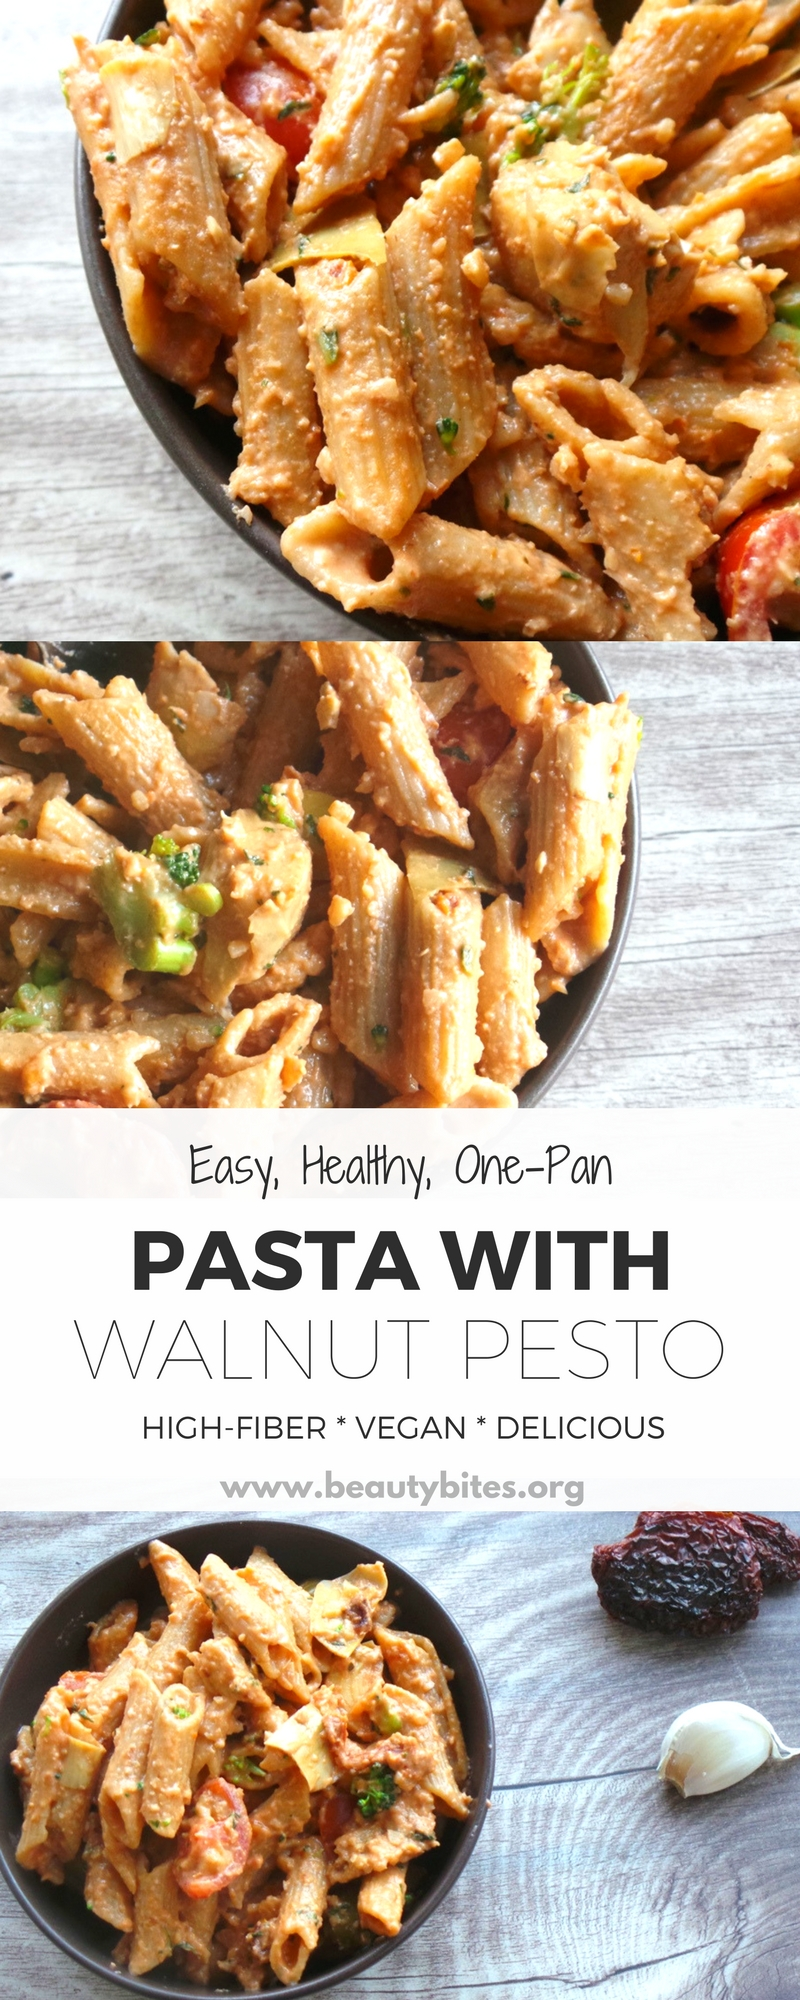 Healthy pasta recipe that is dairy-free, but delicious! This vegan pasta recipe is made with a tasty walnut pesto is high-fiber, easy and you only need one pan (cooking pot)! | healthy vegan dinner recipes